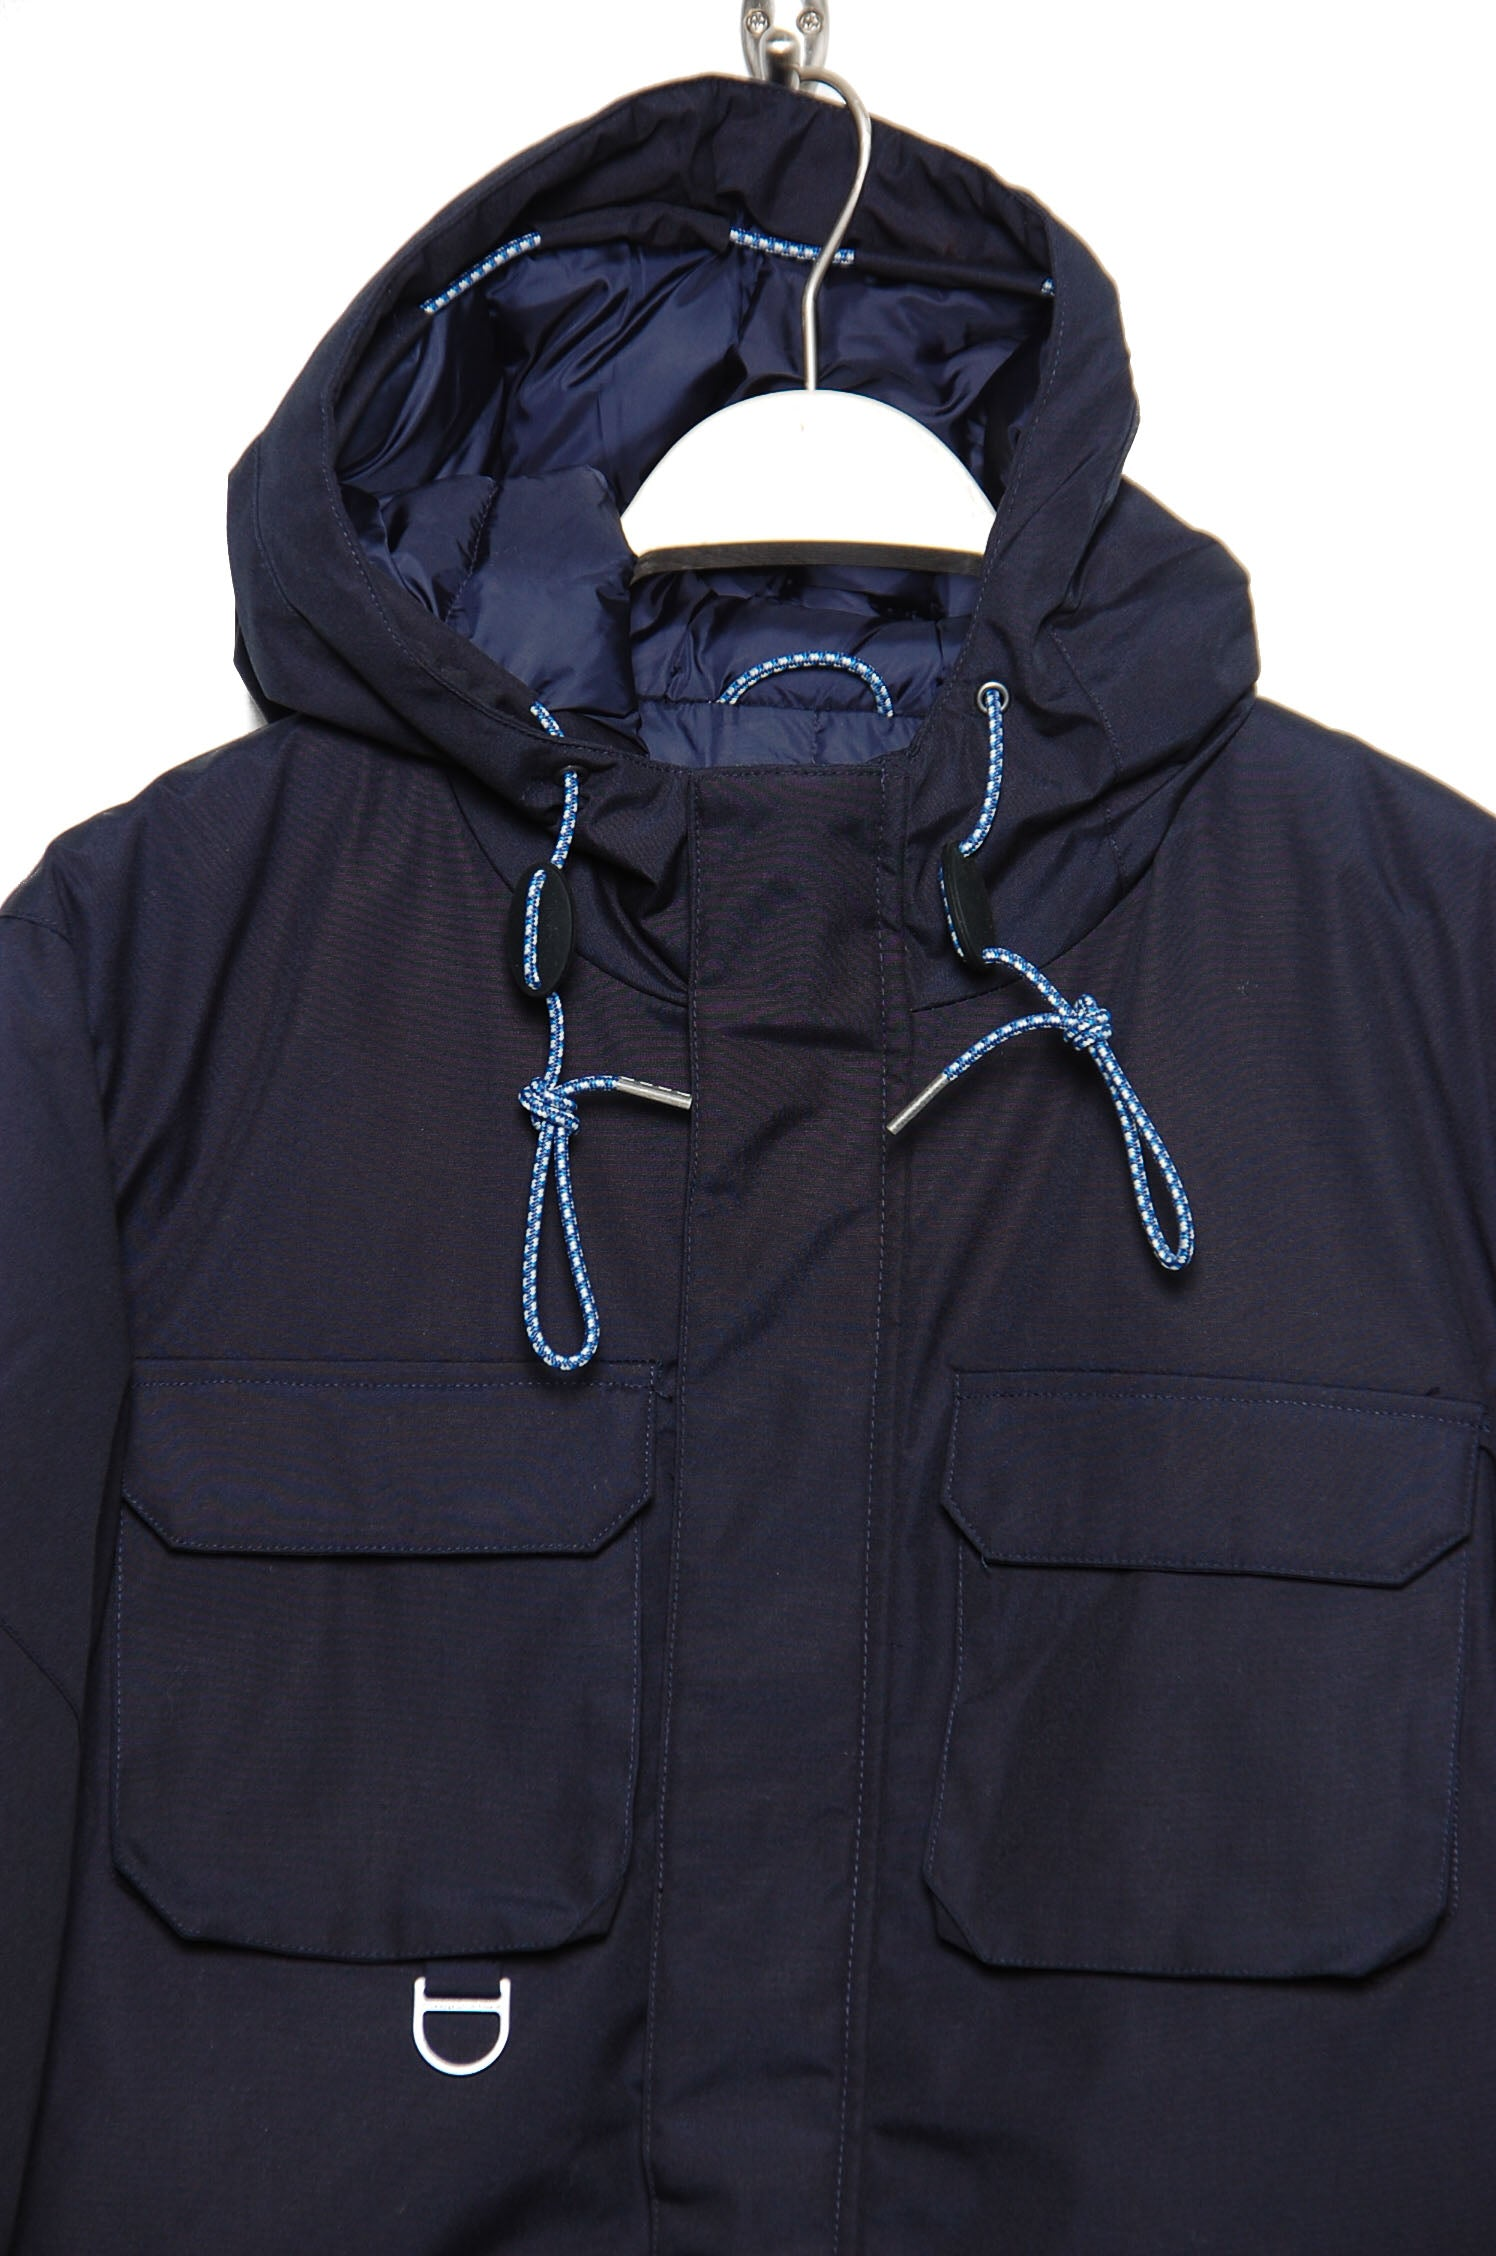 Knowledge Cotton Apparel Heavy Parka total eclipse (dark navy)